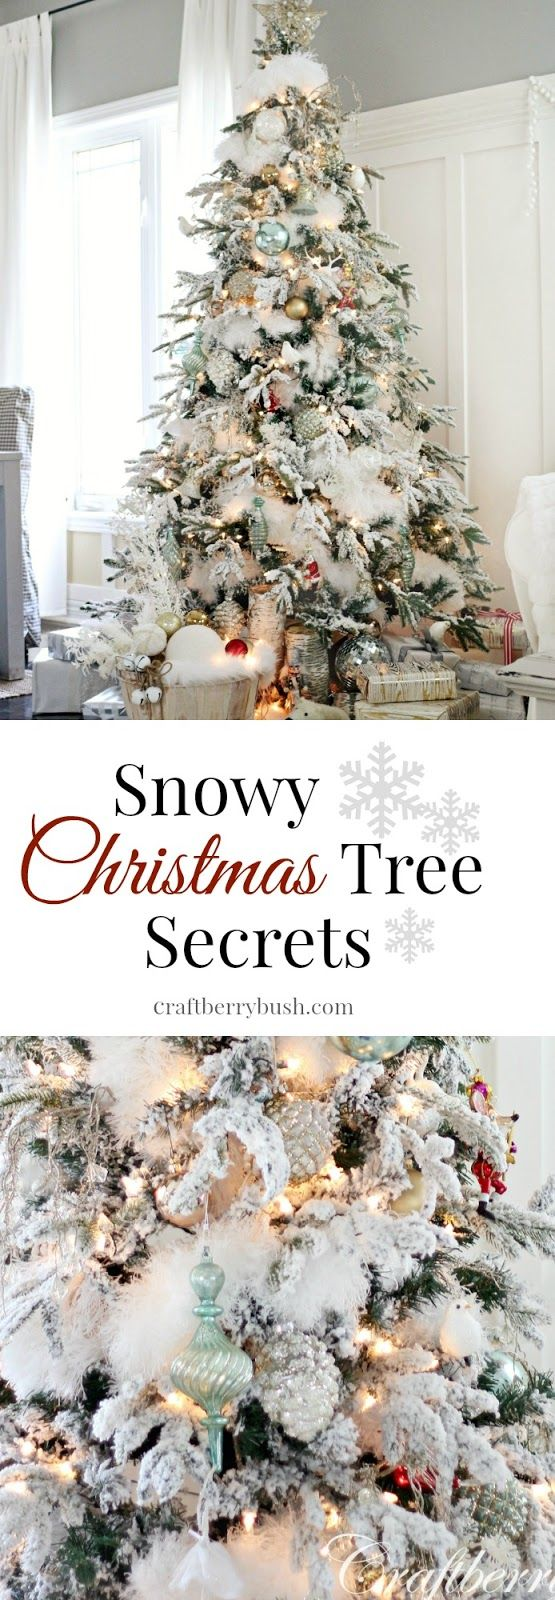 Craftberry Bush: The flocked tree - secret garland revealed; use dollar store dusters!!!